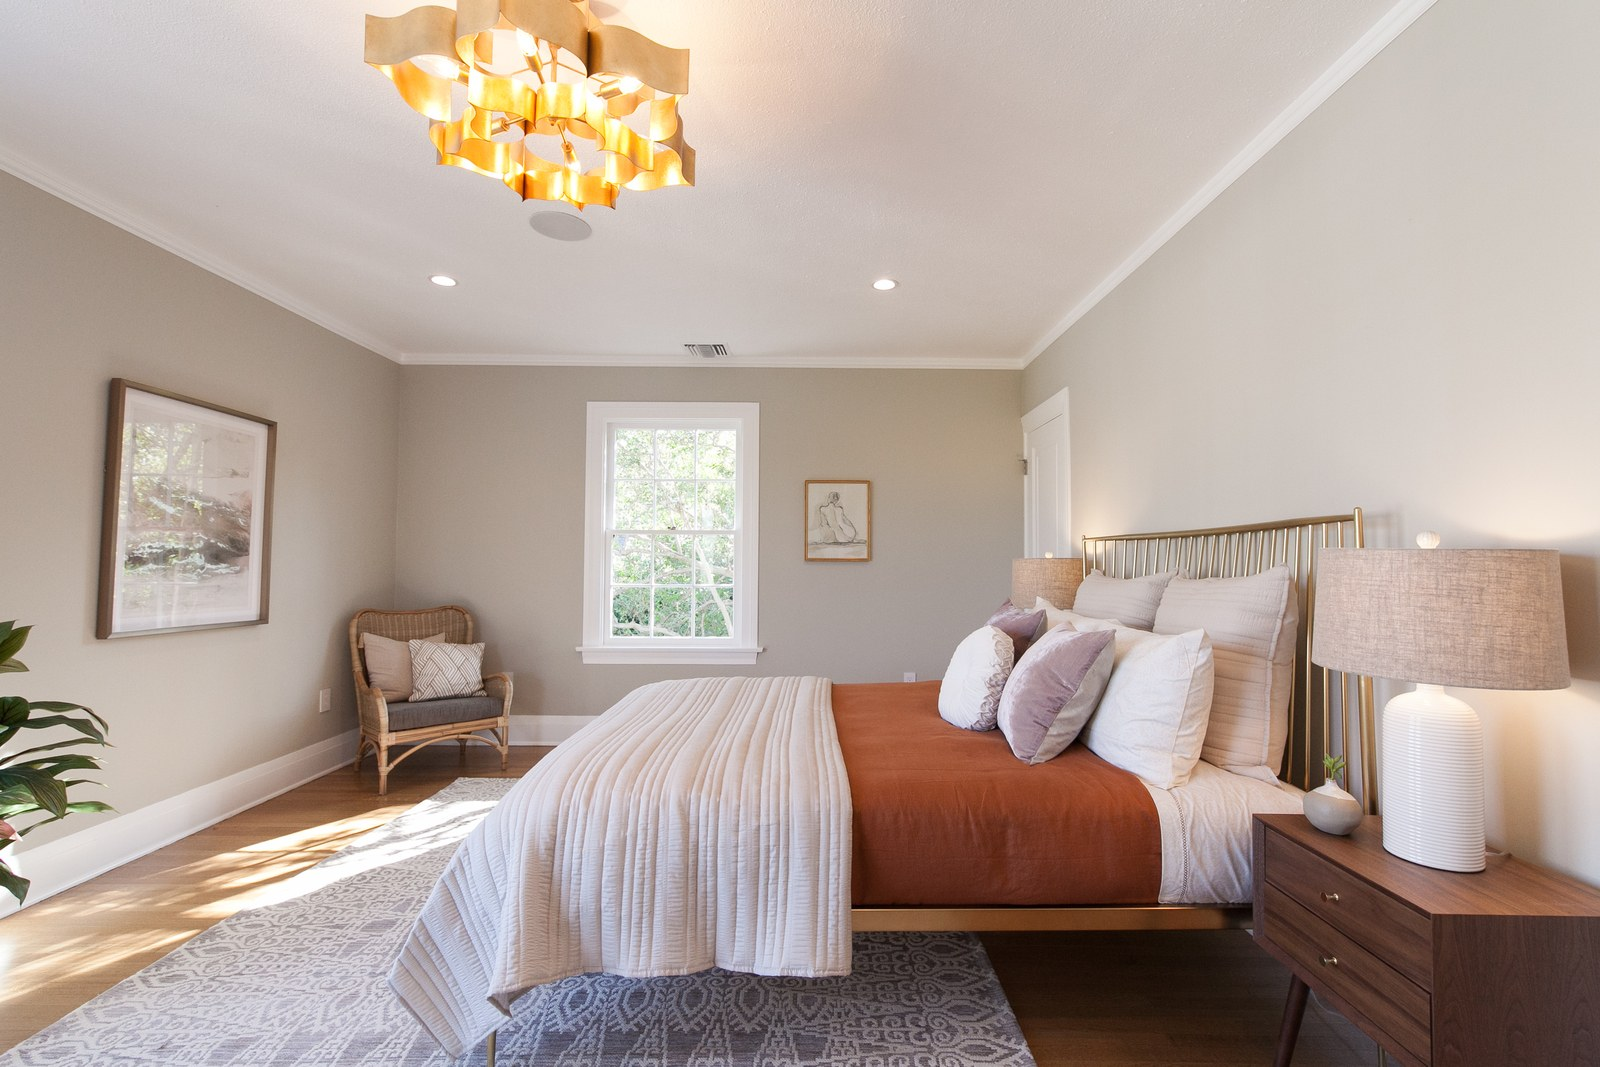 AD - How to Start a Home Staging BusinessArchitectural Digest - April 2019